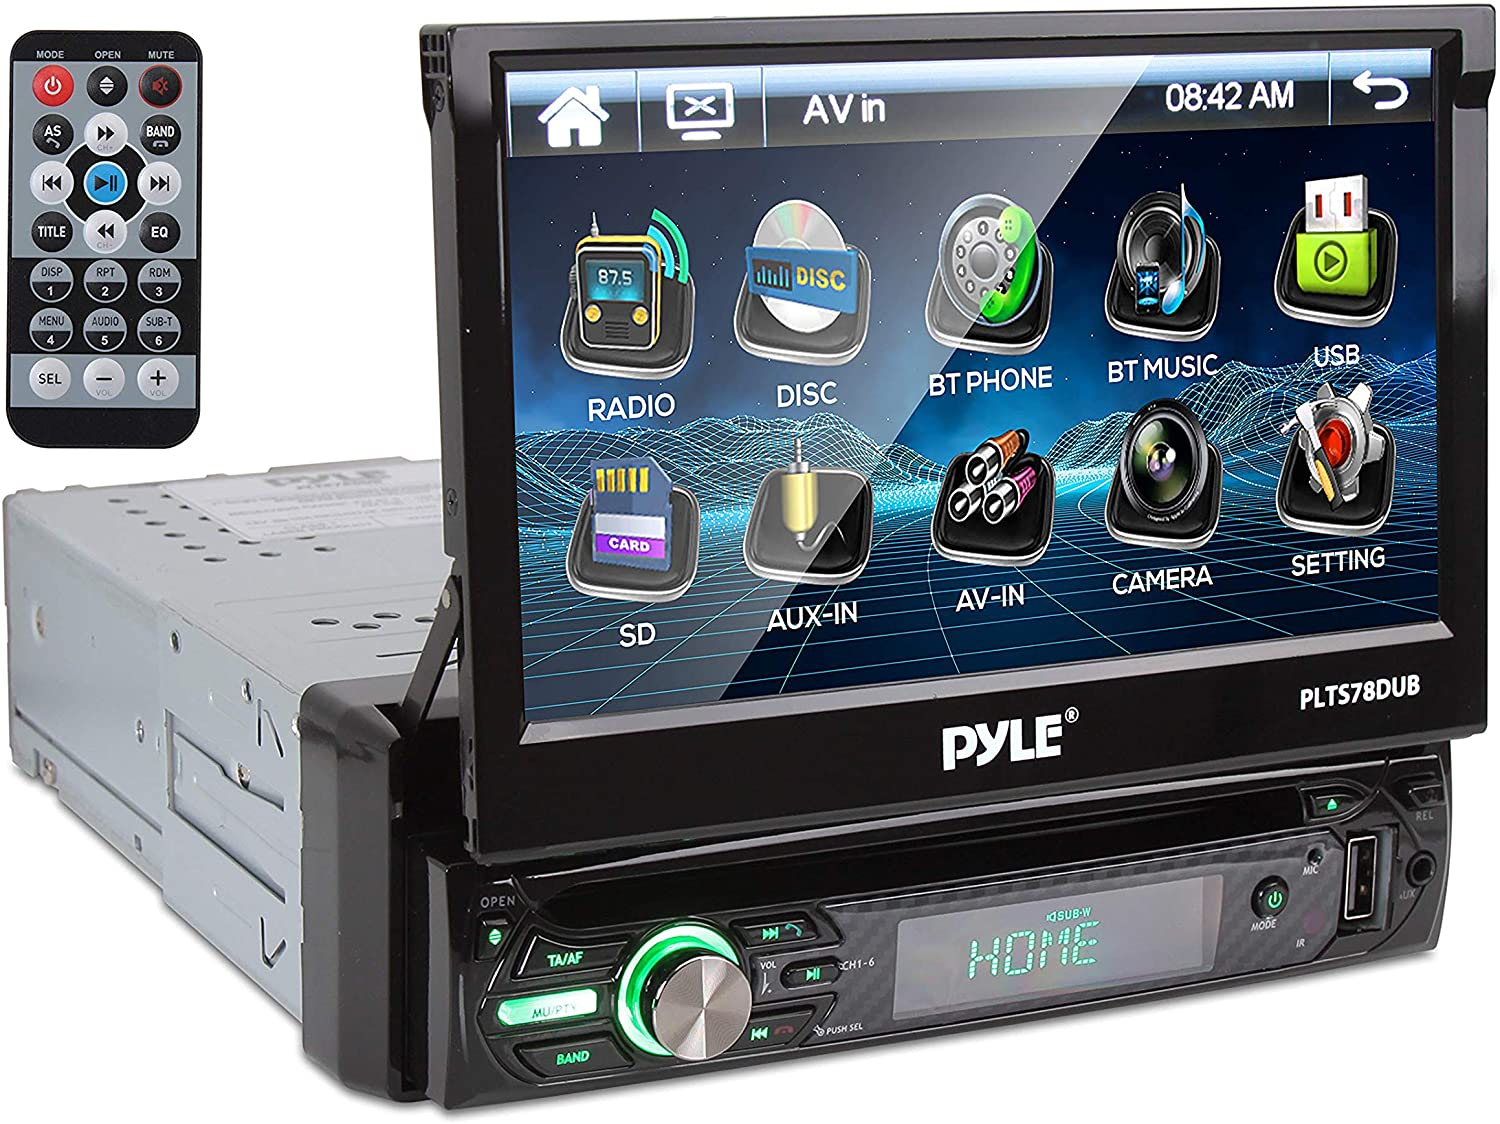 Pyle Single-DIN Head Unit Receiver